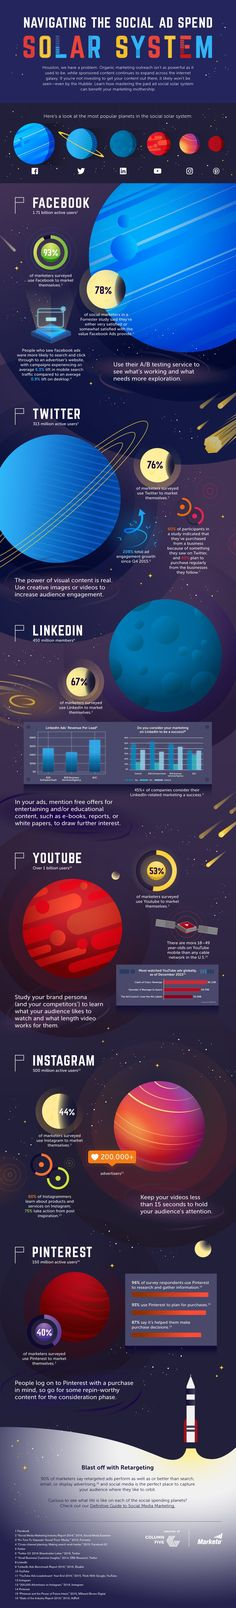 How to Navigate the Social Ad Spend Solar System - #Infographic